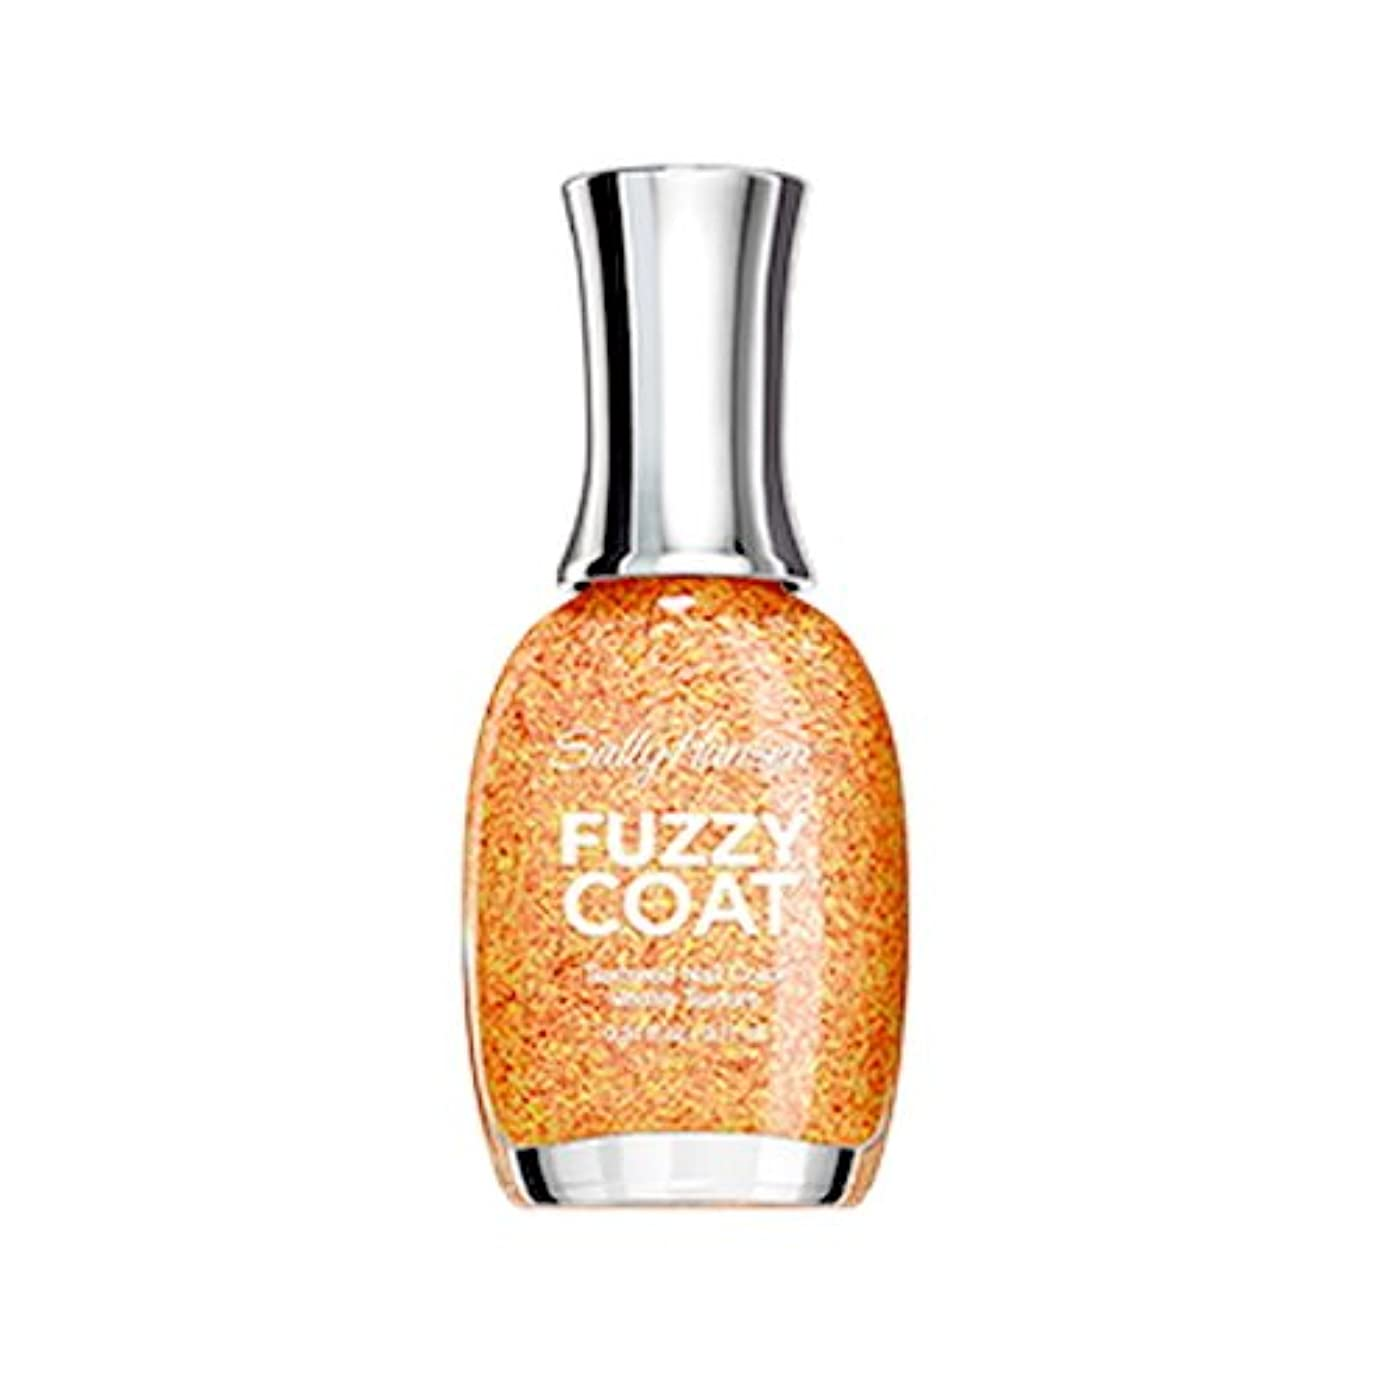 昼間受け継ぐ元の(6 Pack) SALLY HANSEN Fuzzy Coat Special Effect Textured Nail Color - Peach Fuzz (並行輸入品)